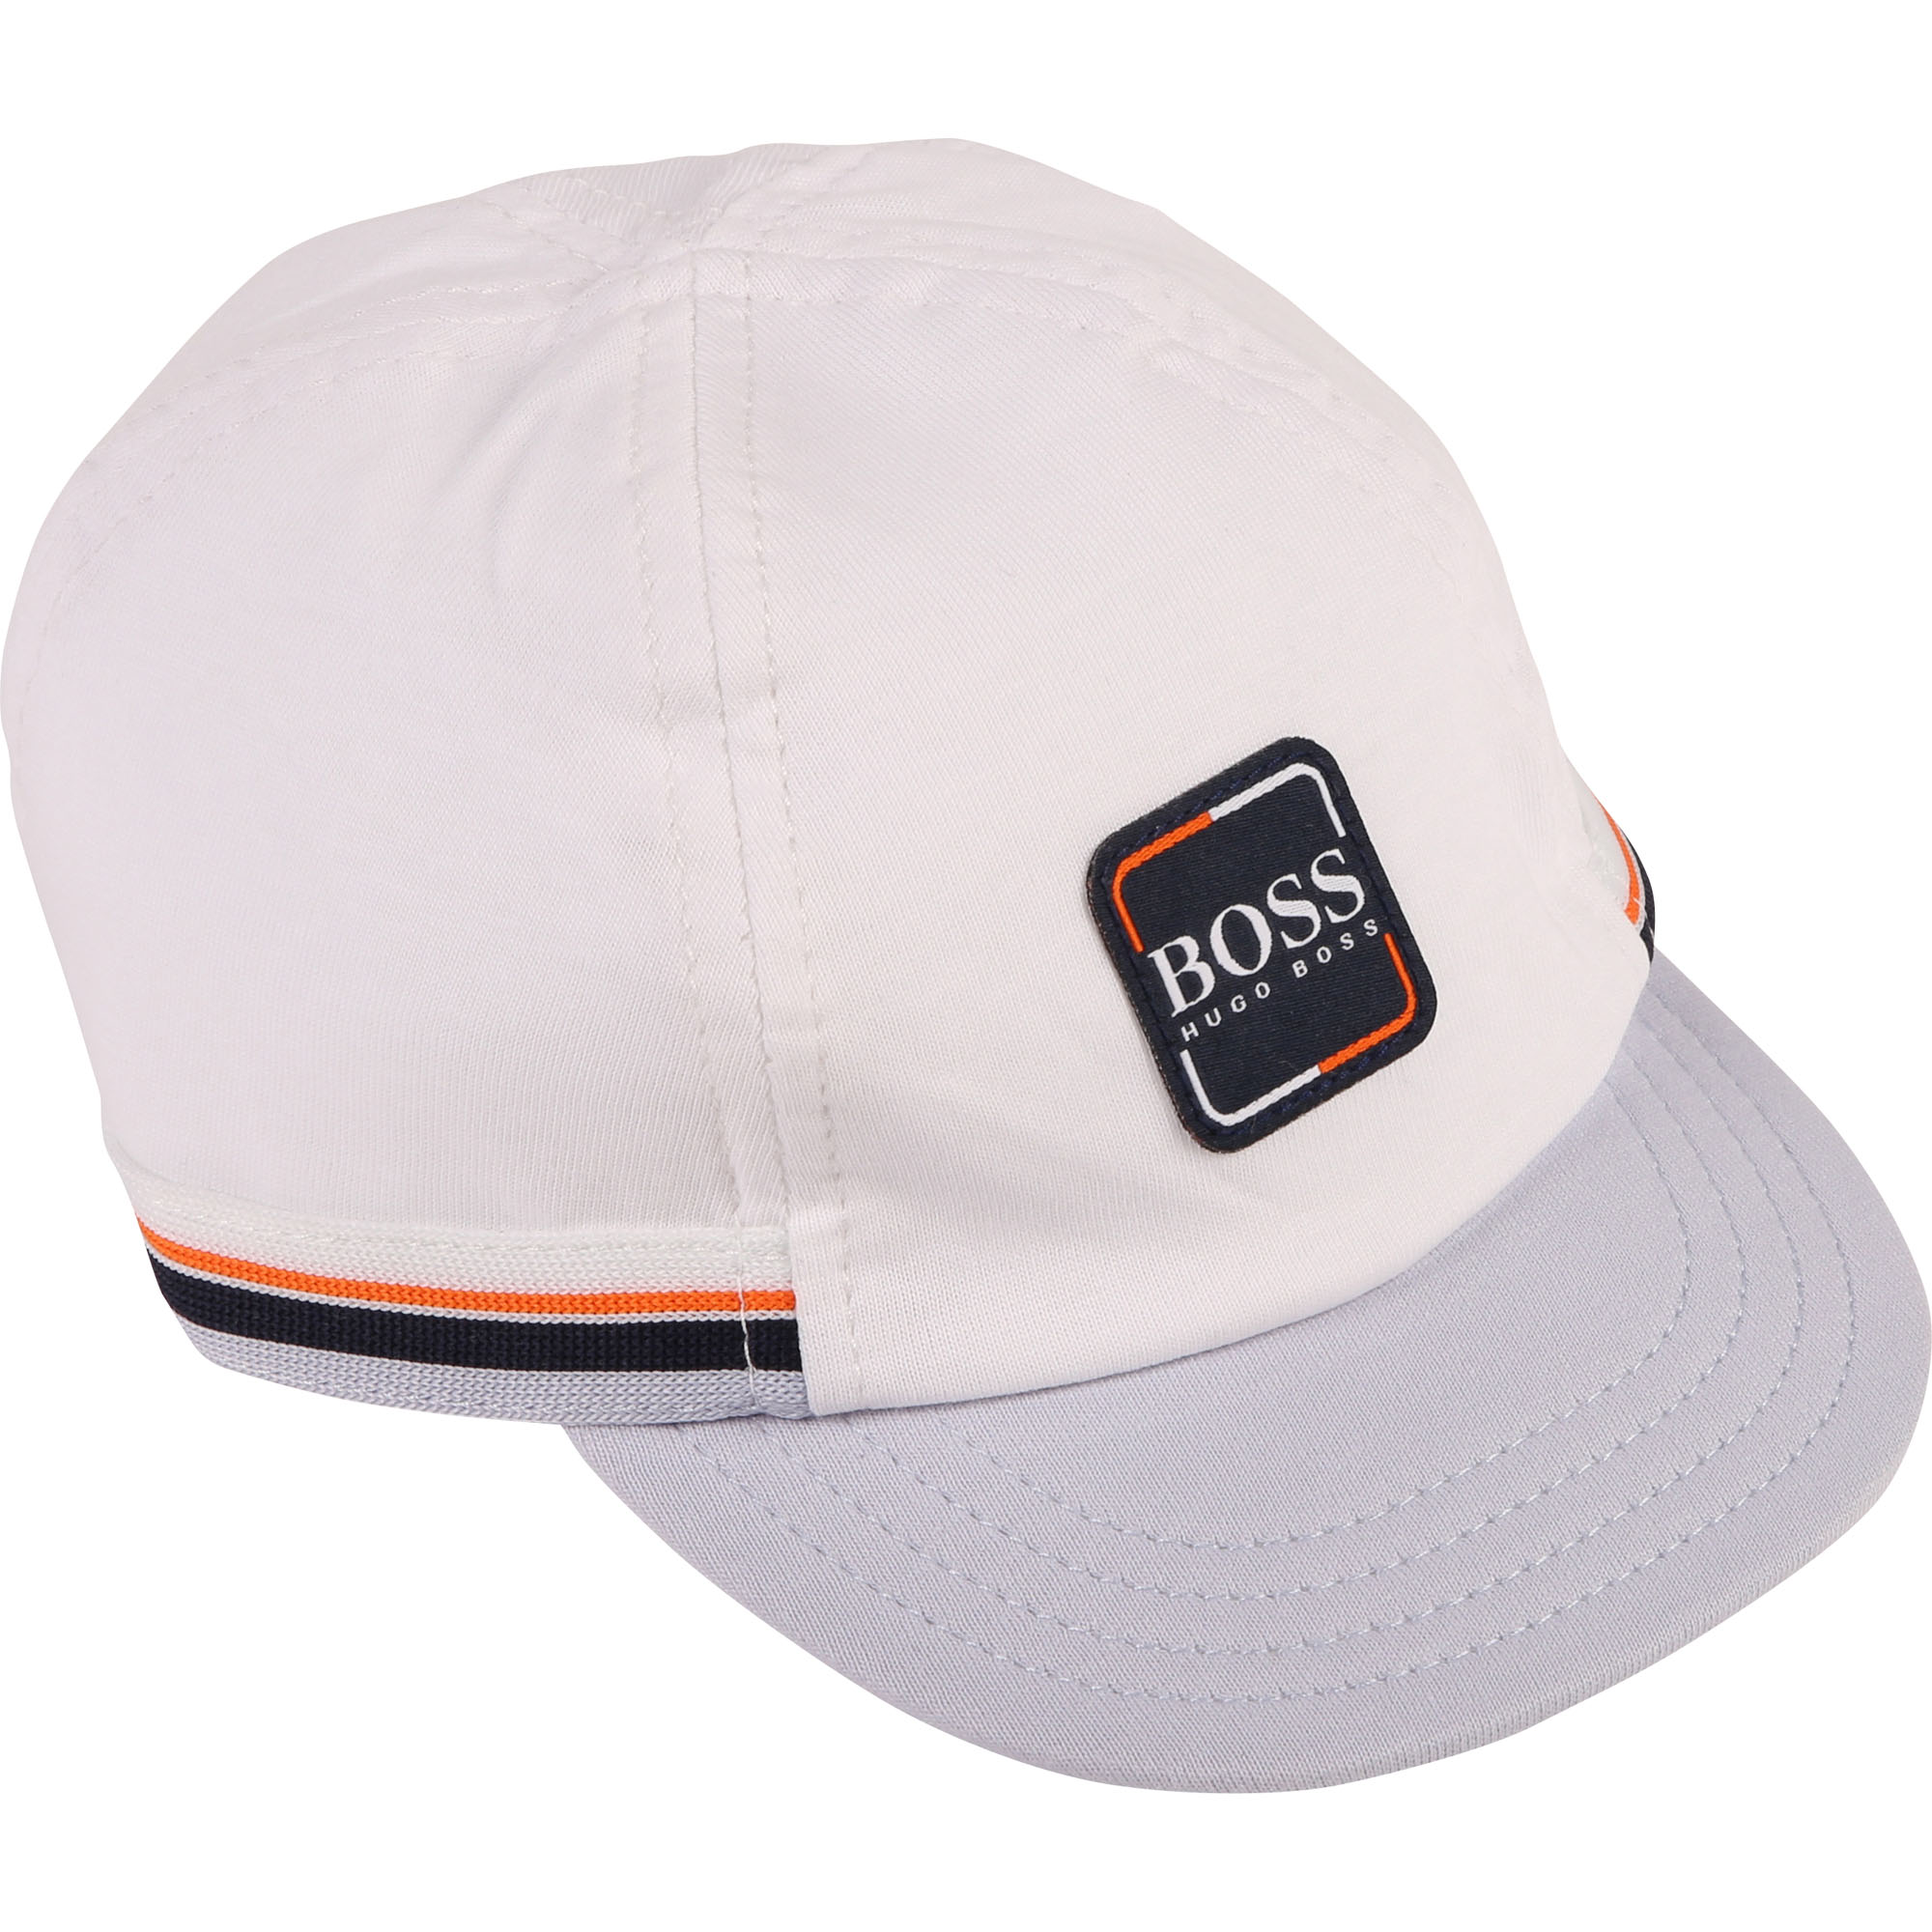 CAP BOSS for BOY